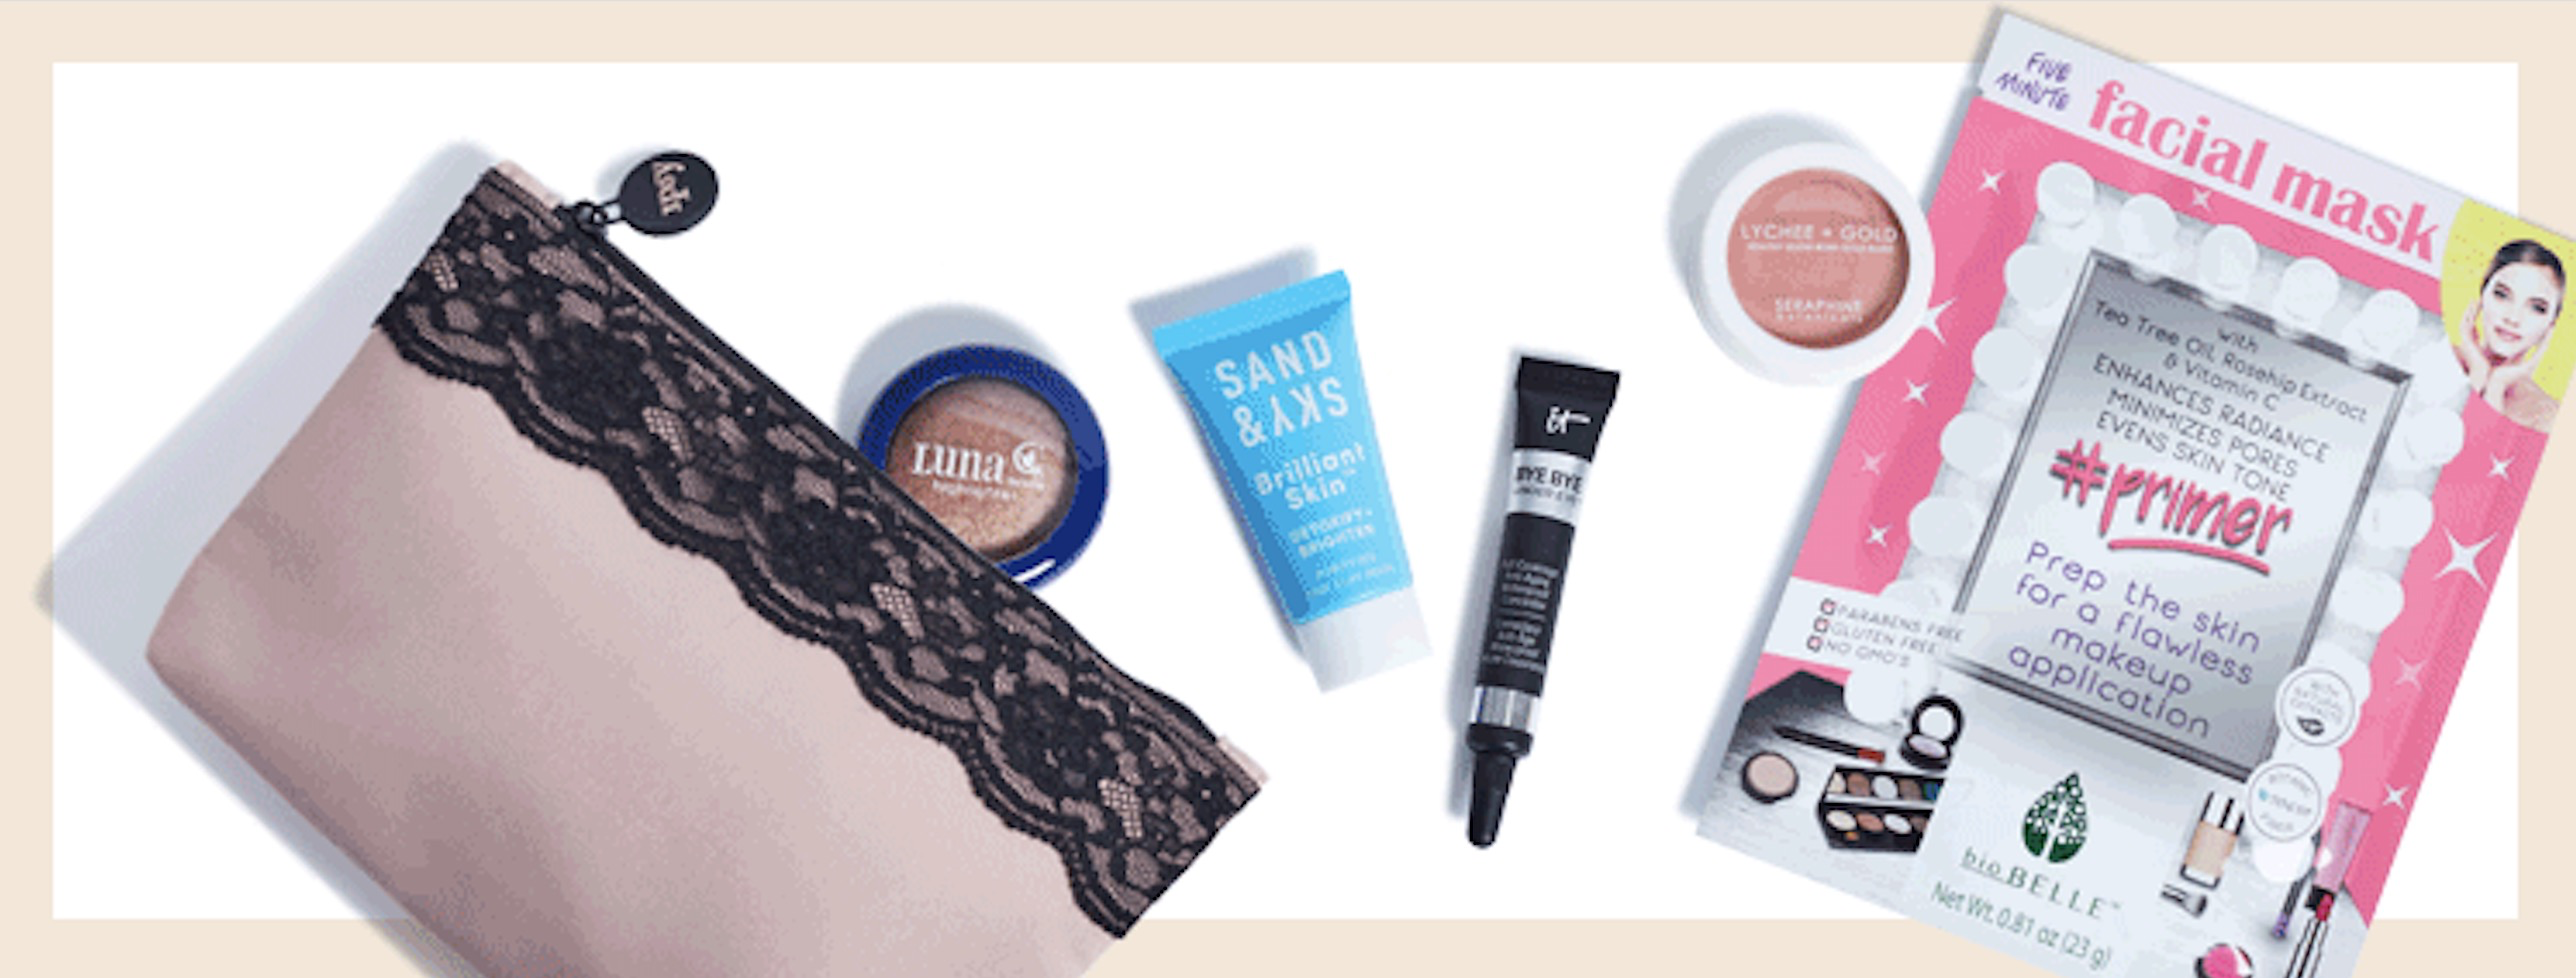 Ipsy Bag Cost - Madly Indian